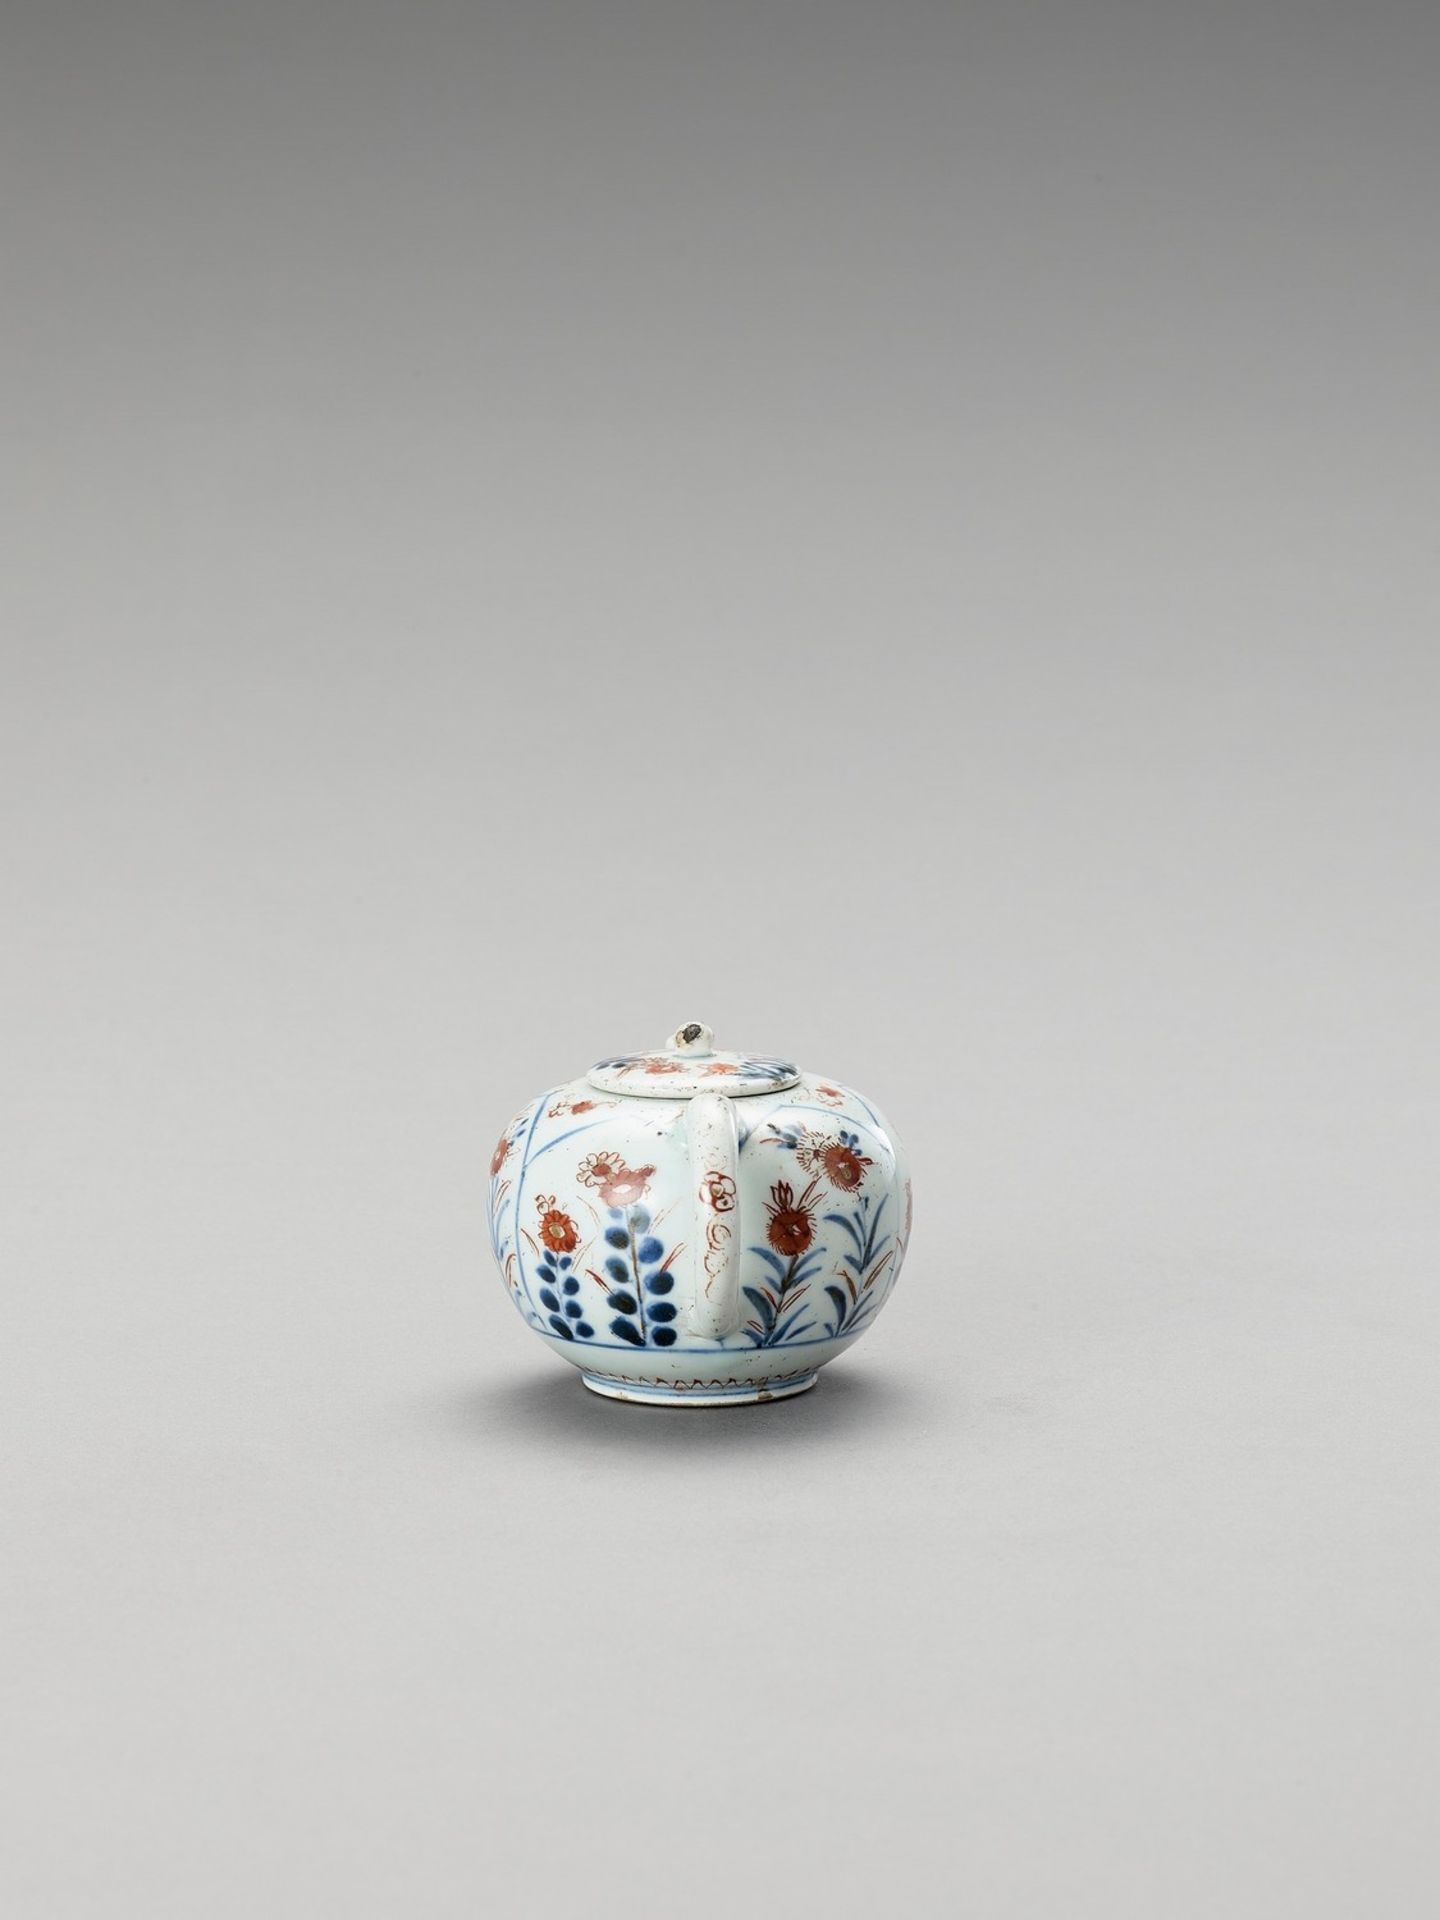 AN IMARI PORCELAIN TEAPOT WITH COVER - Image 2 of 6